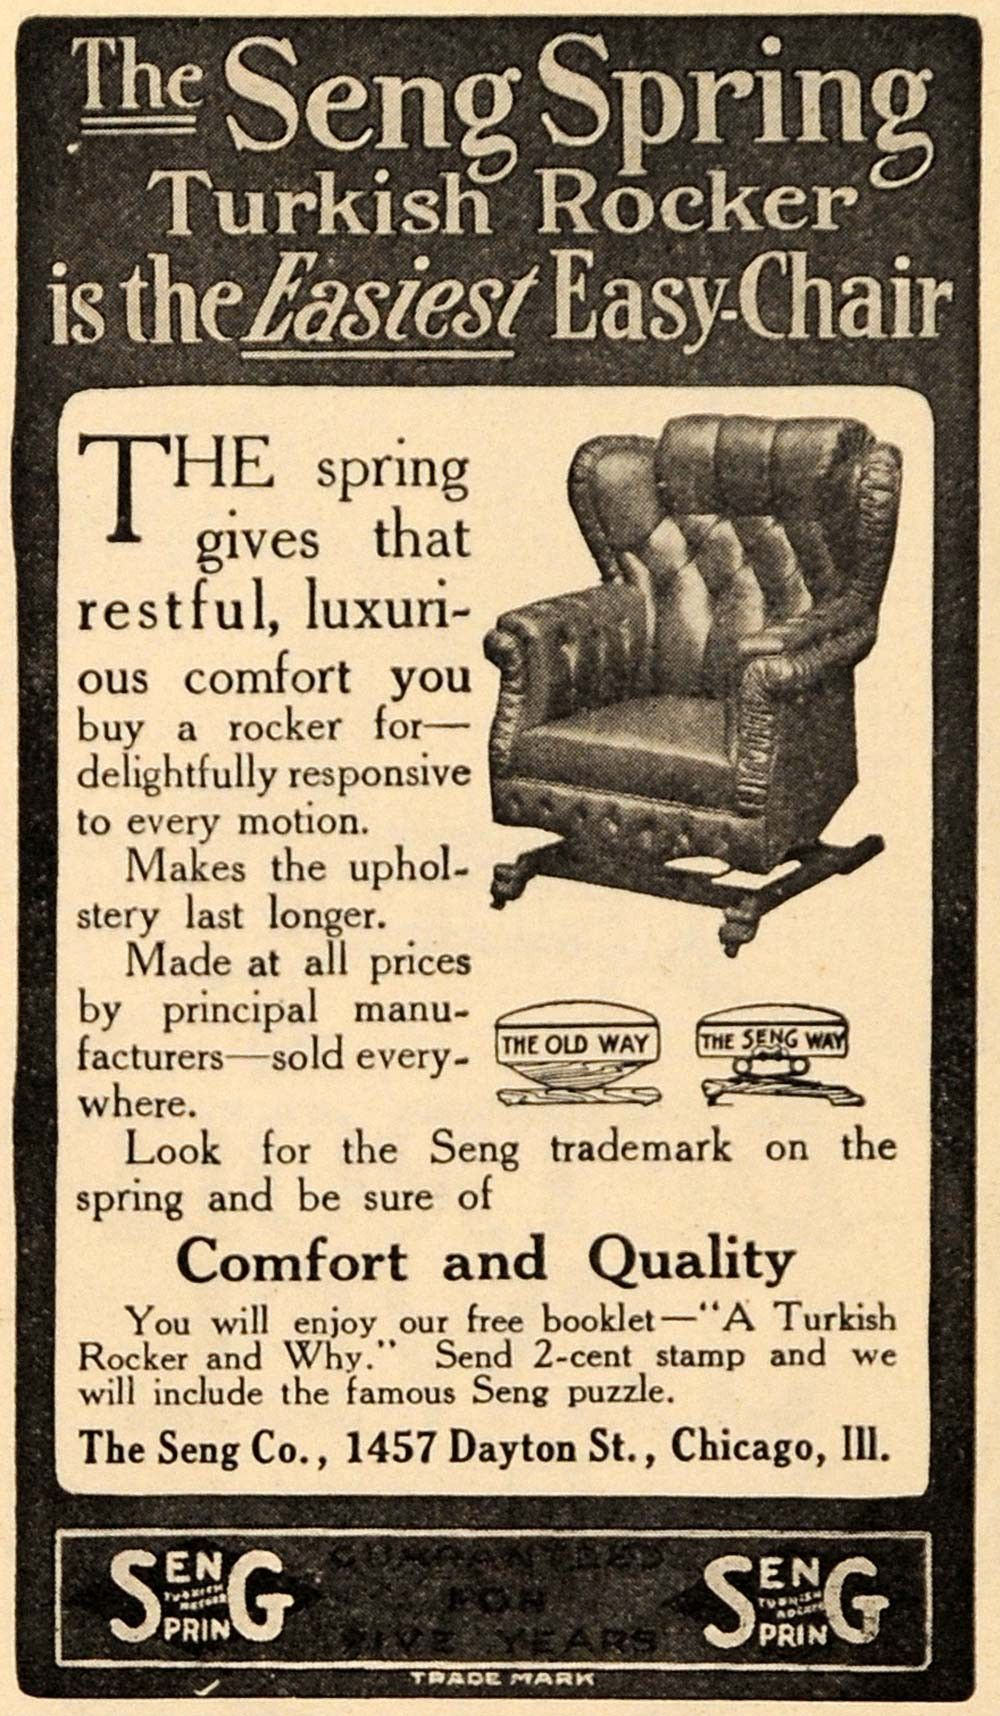 1910 Ad Seng Spring Turkish Rocker Easy Chair Furniture - ORIGINAL GH3  sc 1 st  Pinterest & 1910 Ad Seng Spring Turkish Rocker Easy Chair Furniture - ORIGINAL ...